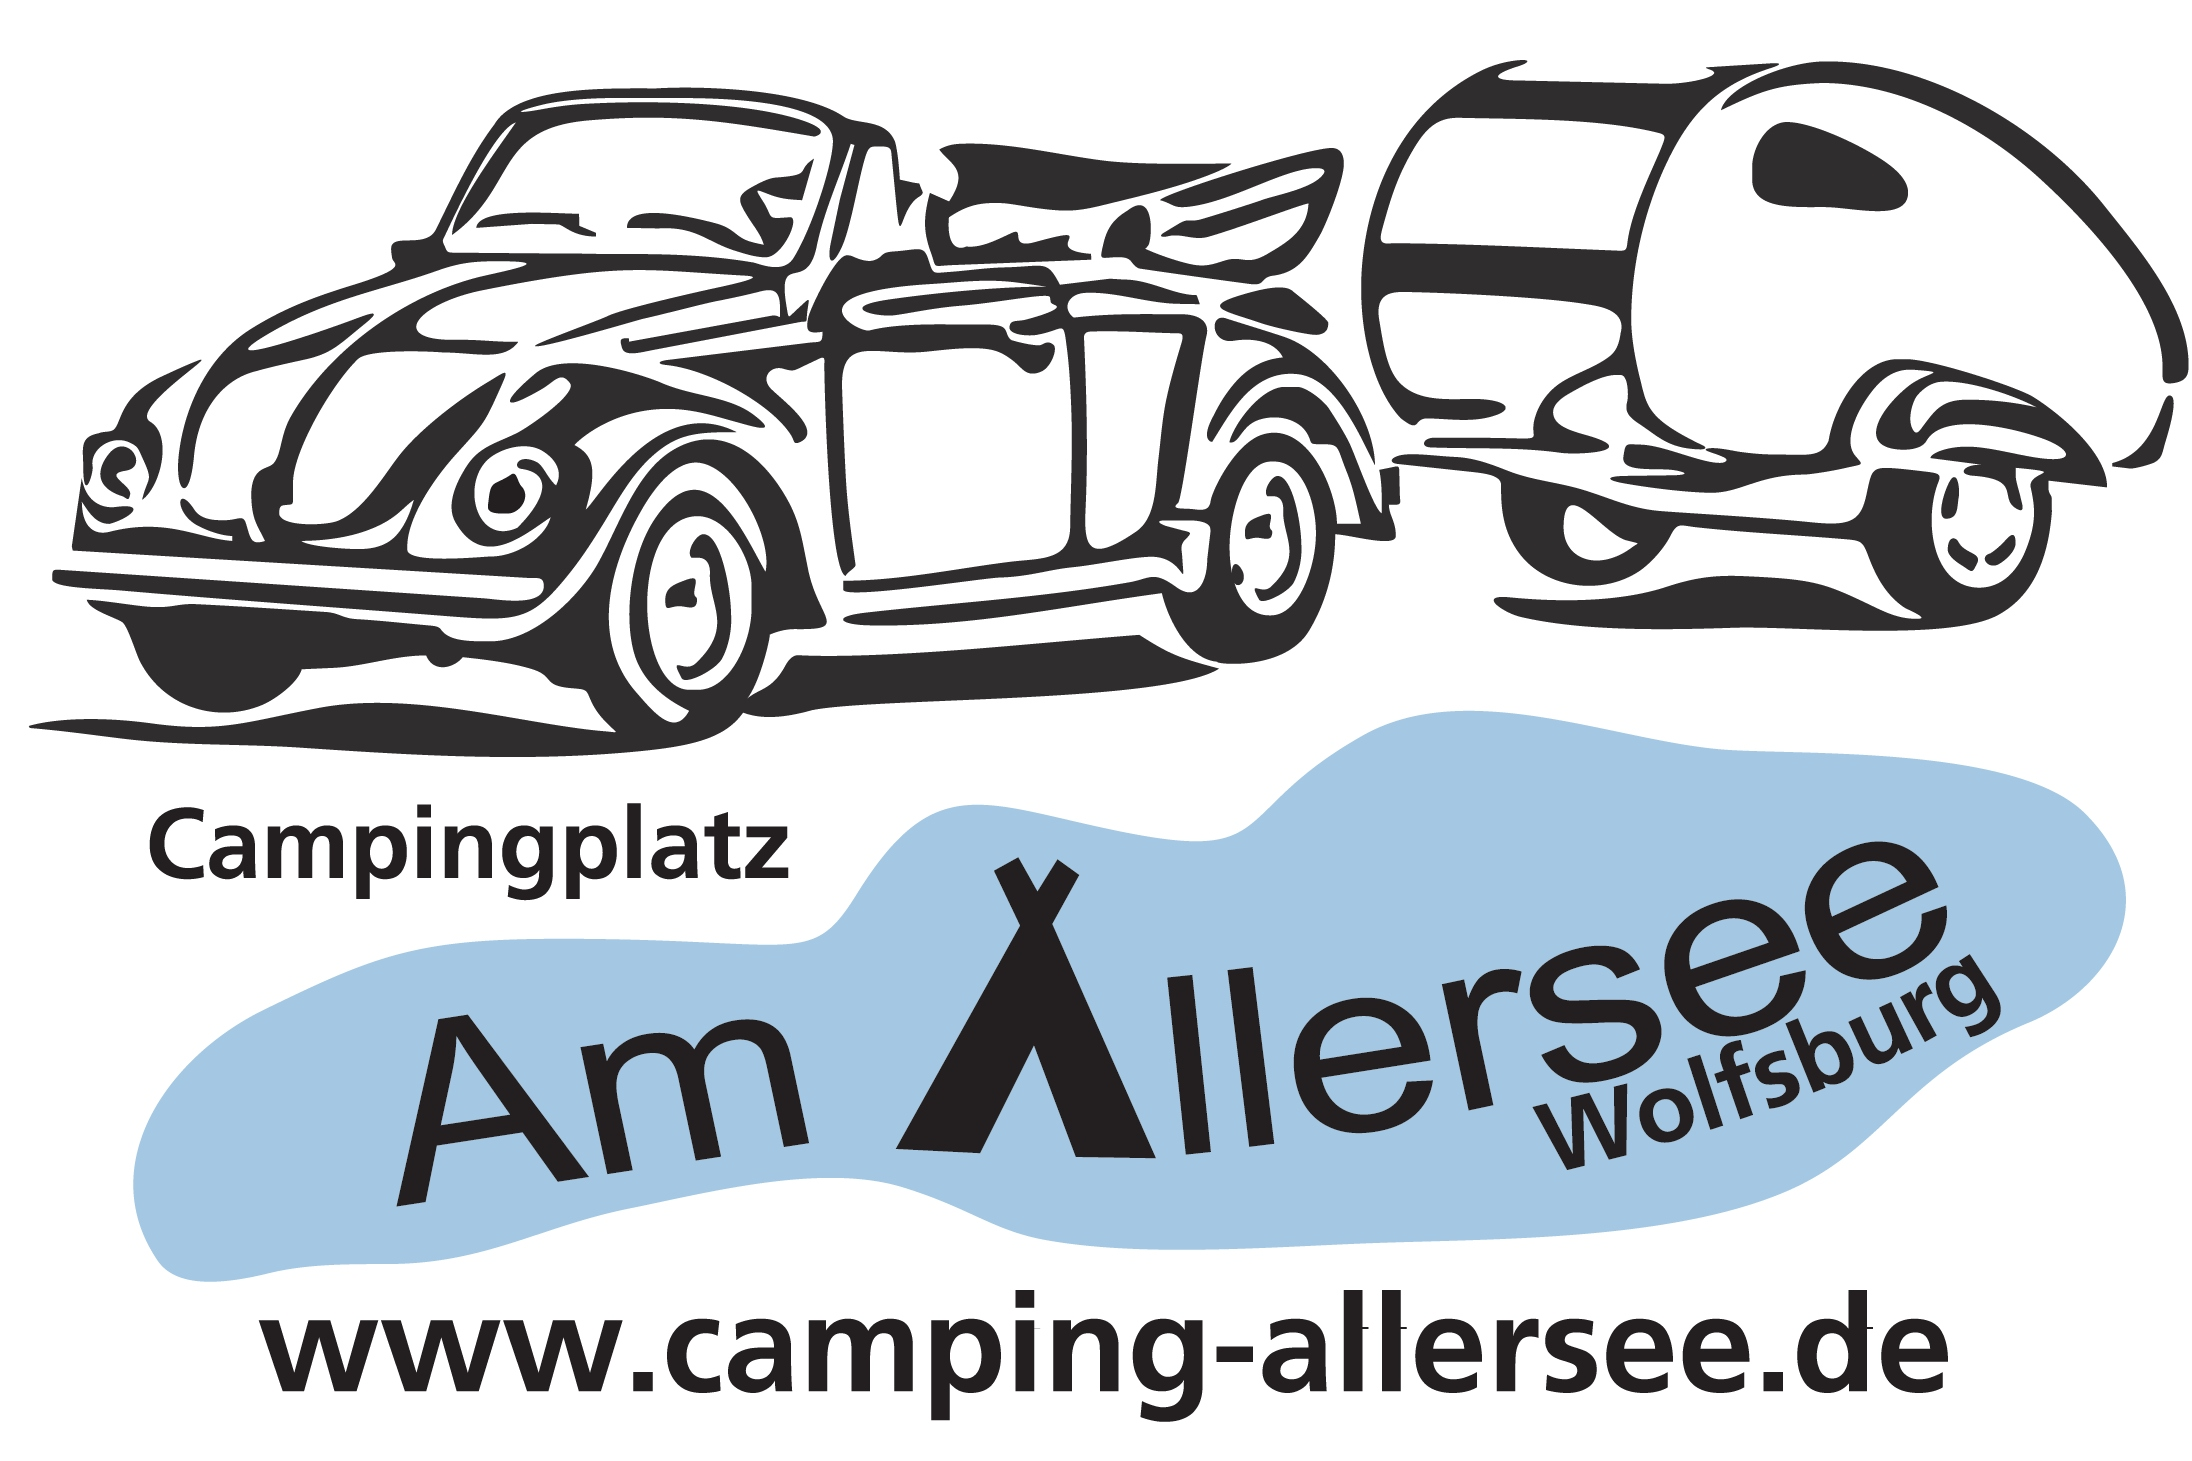 Campingplatz am Allersee